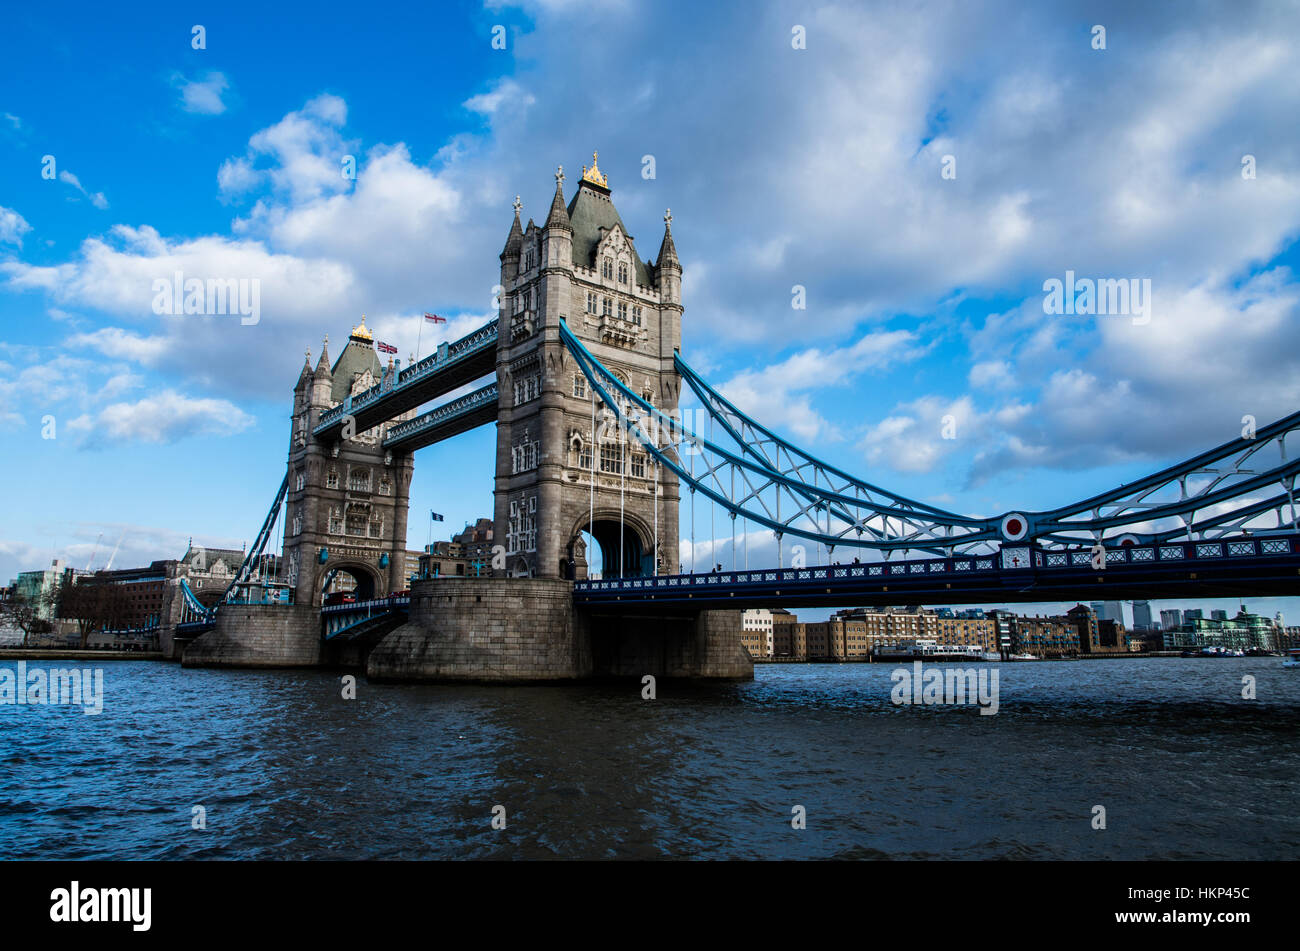 The iconic Tower Bridge with his great profile against the blu sunny sky in winter. - Stock Image